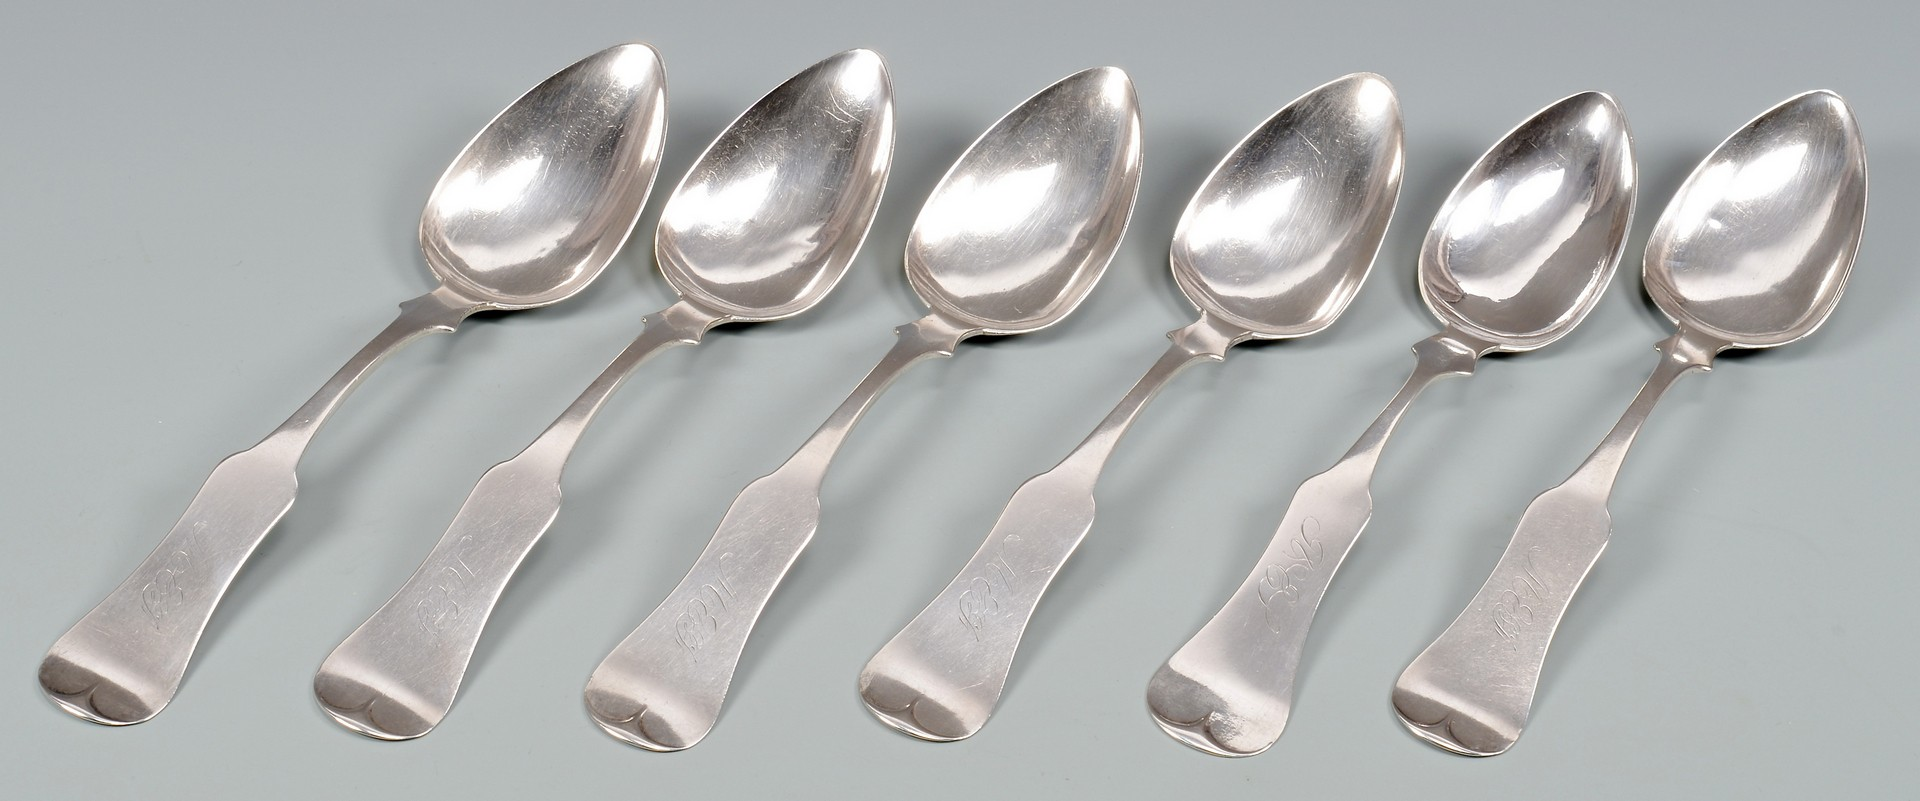 Lot 167: Group of KY Coin Silver Flatware